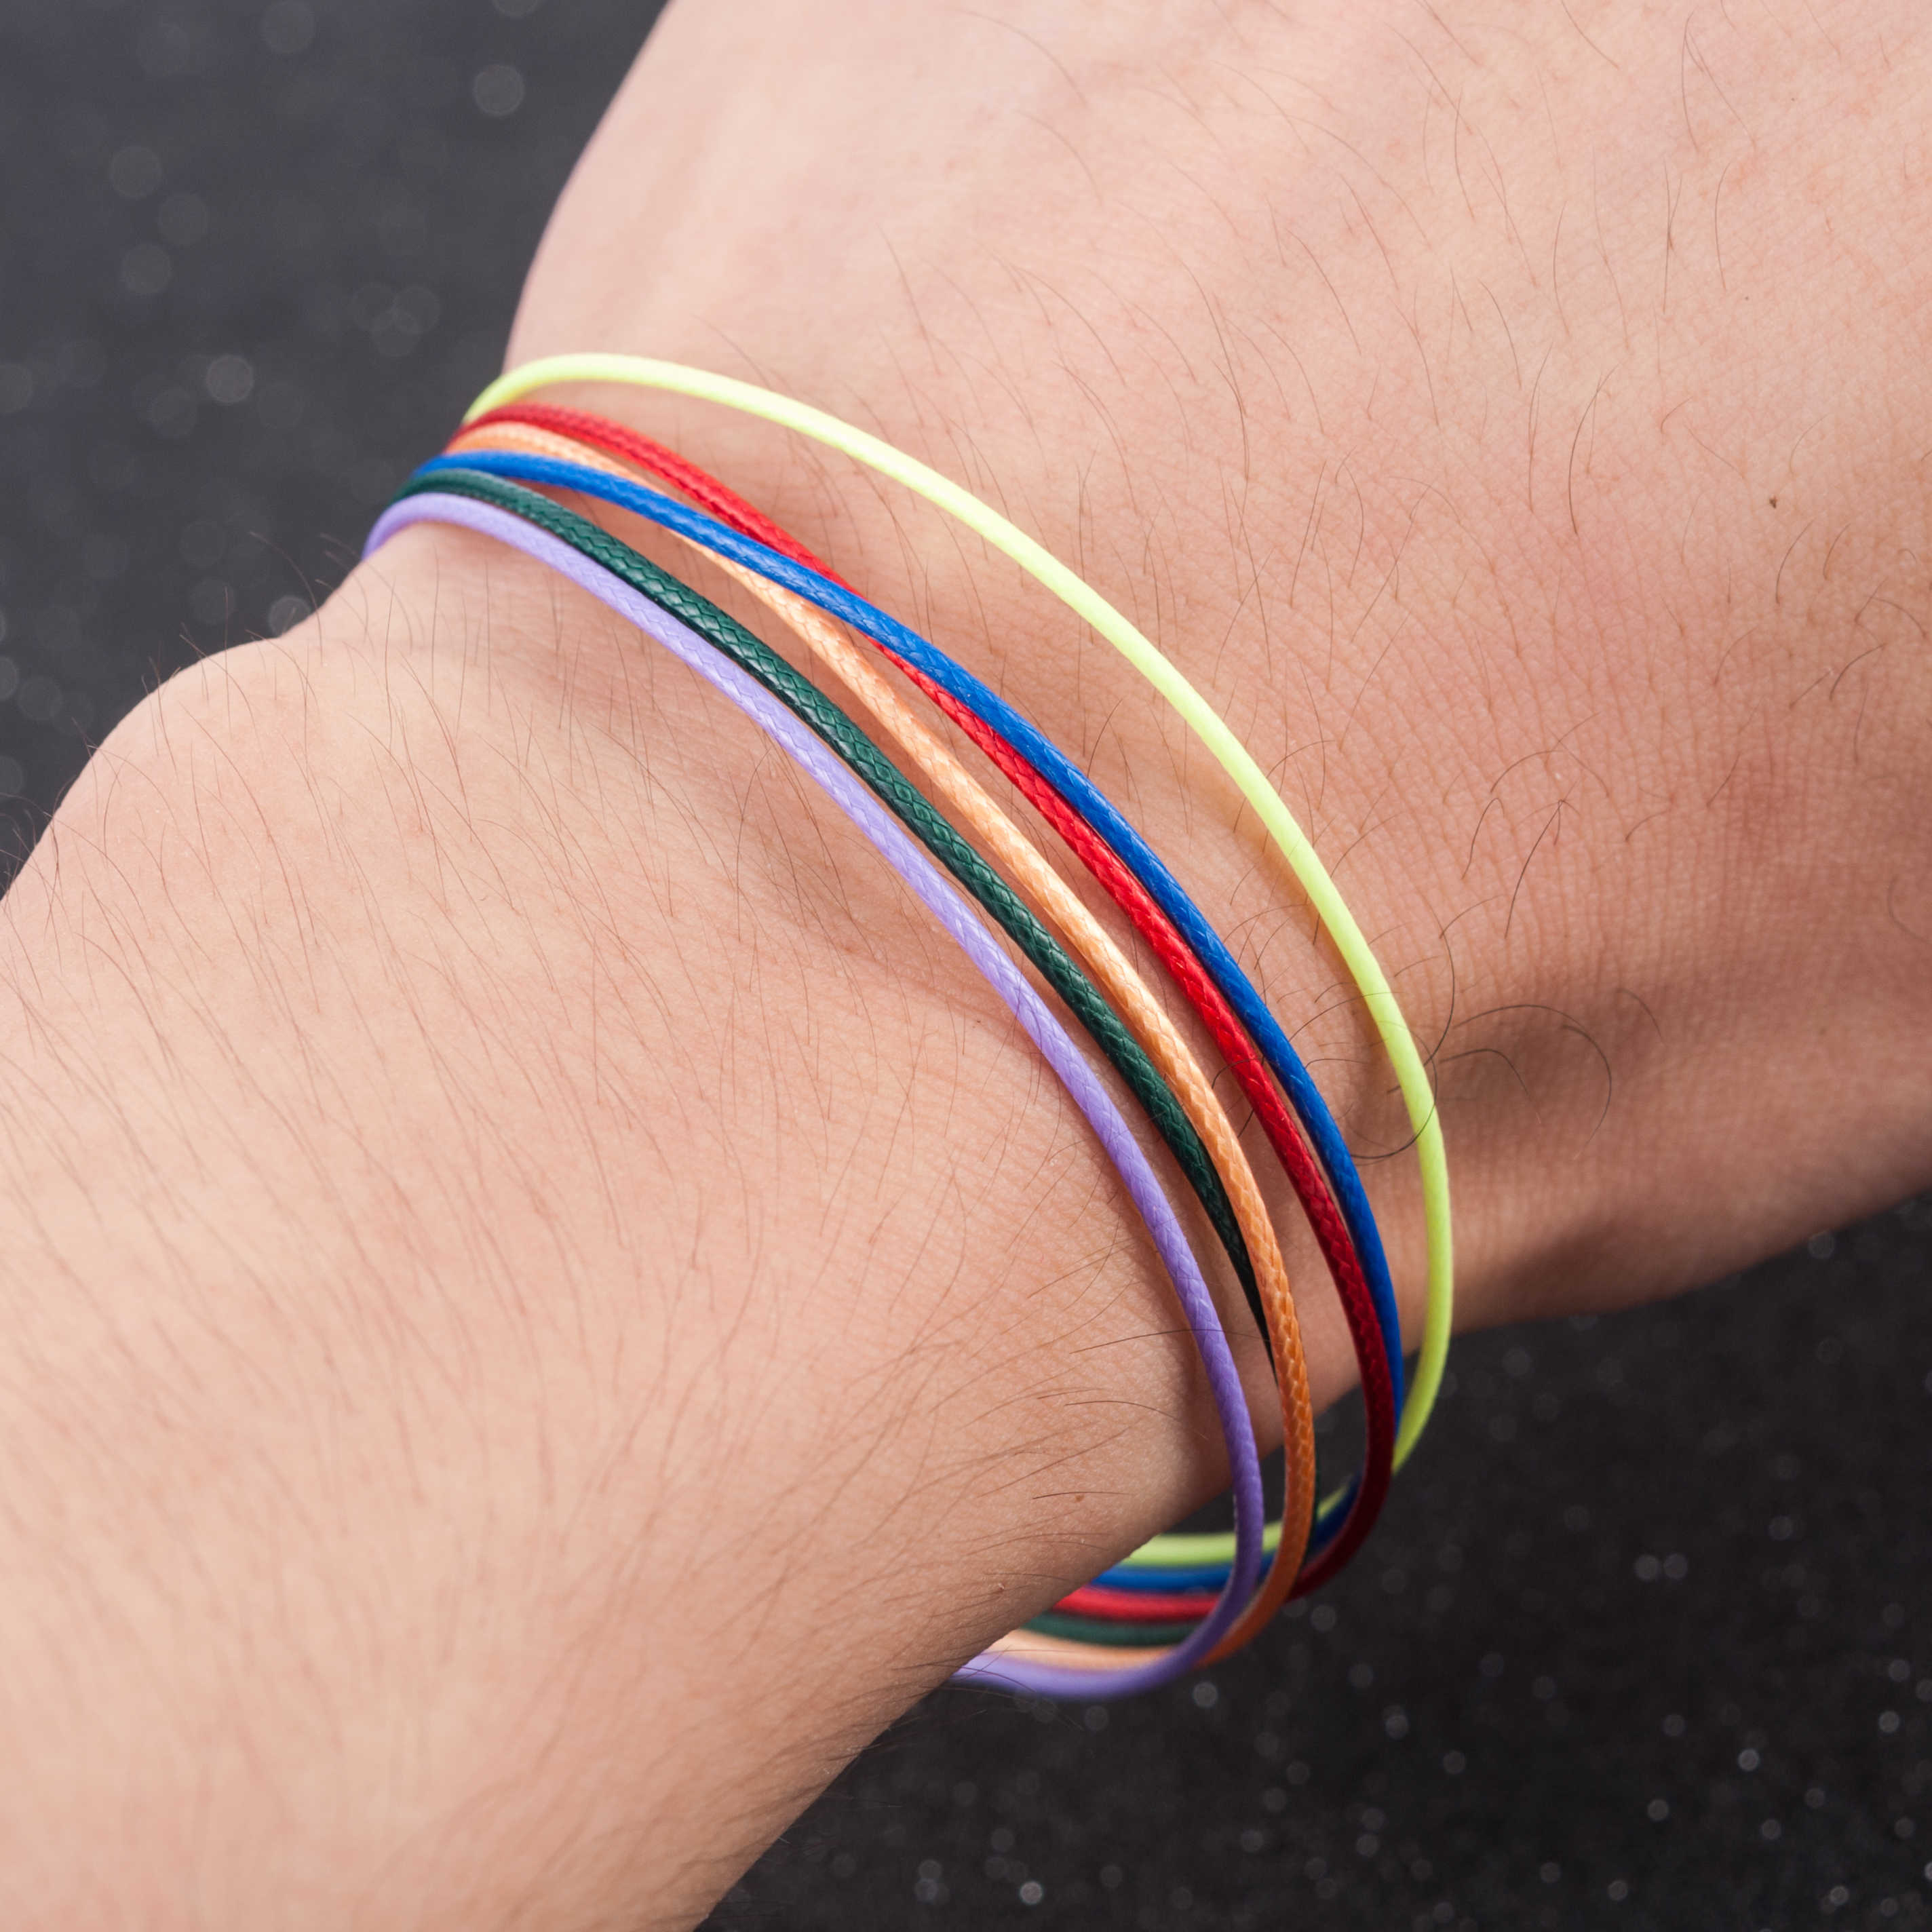 Hot Sale 2019 1PC Fashion PU Leather Bracelet Women Men Gay Pride Rainbow Charms Bracelet Gift For Gay Jewelry Lover Couple